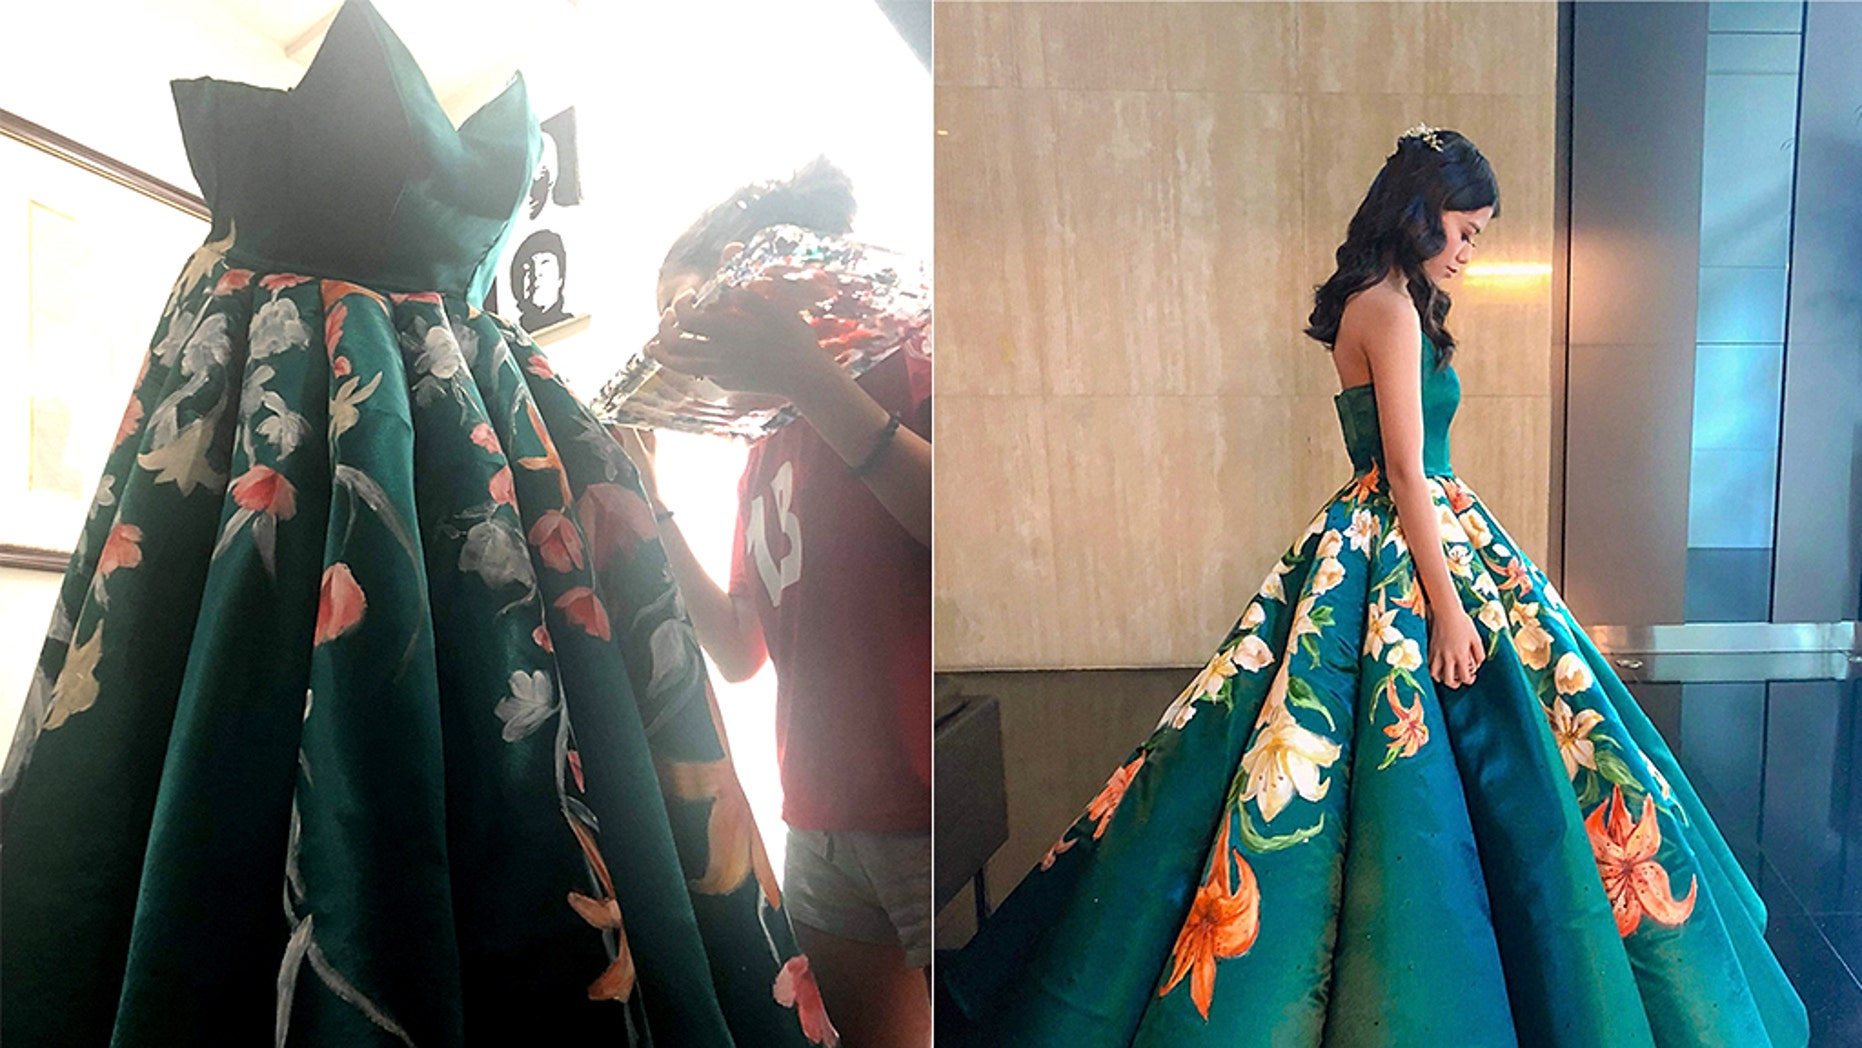 Teen Called A Disney Princess After Making Painting Her Own Gorgeous Graduation Gown Fox News